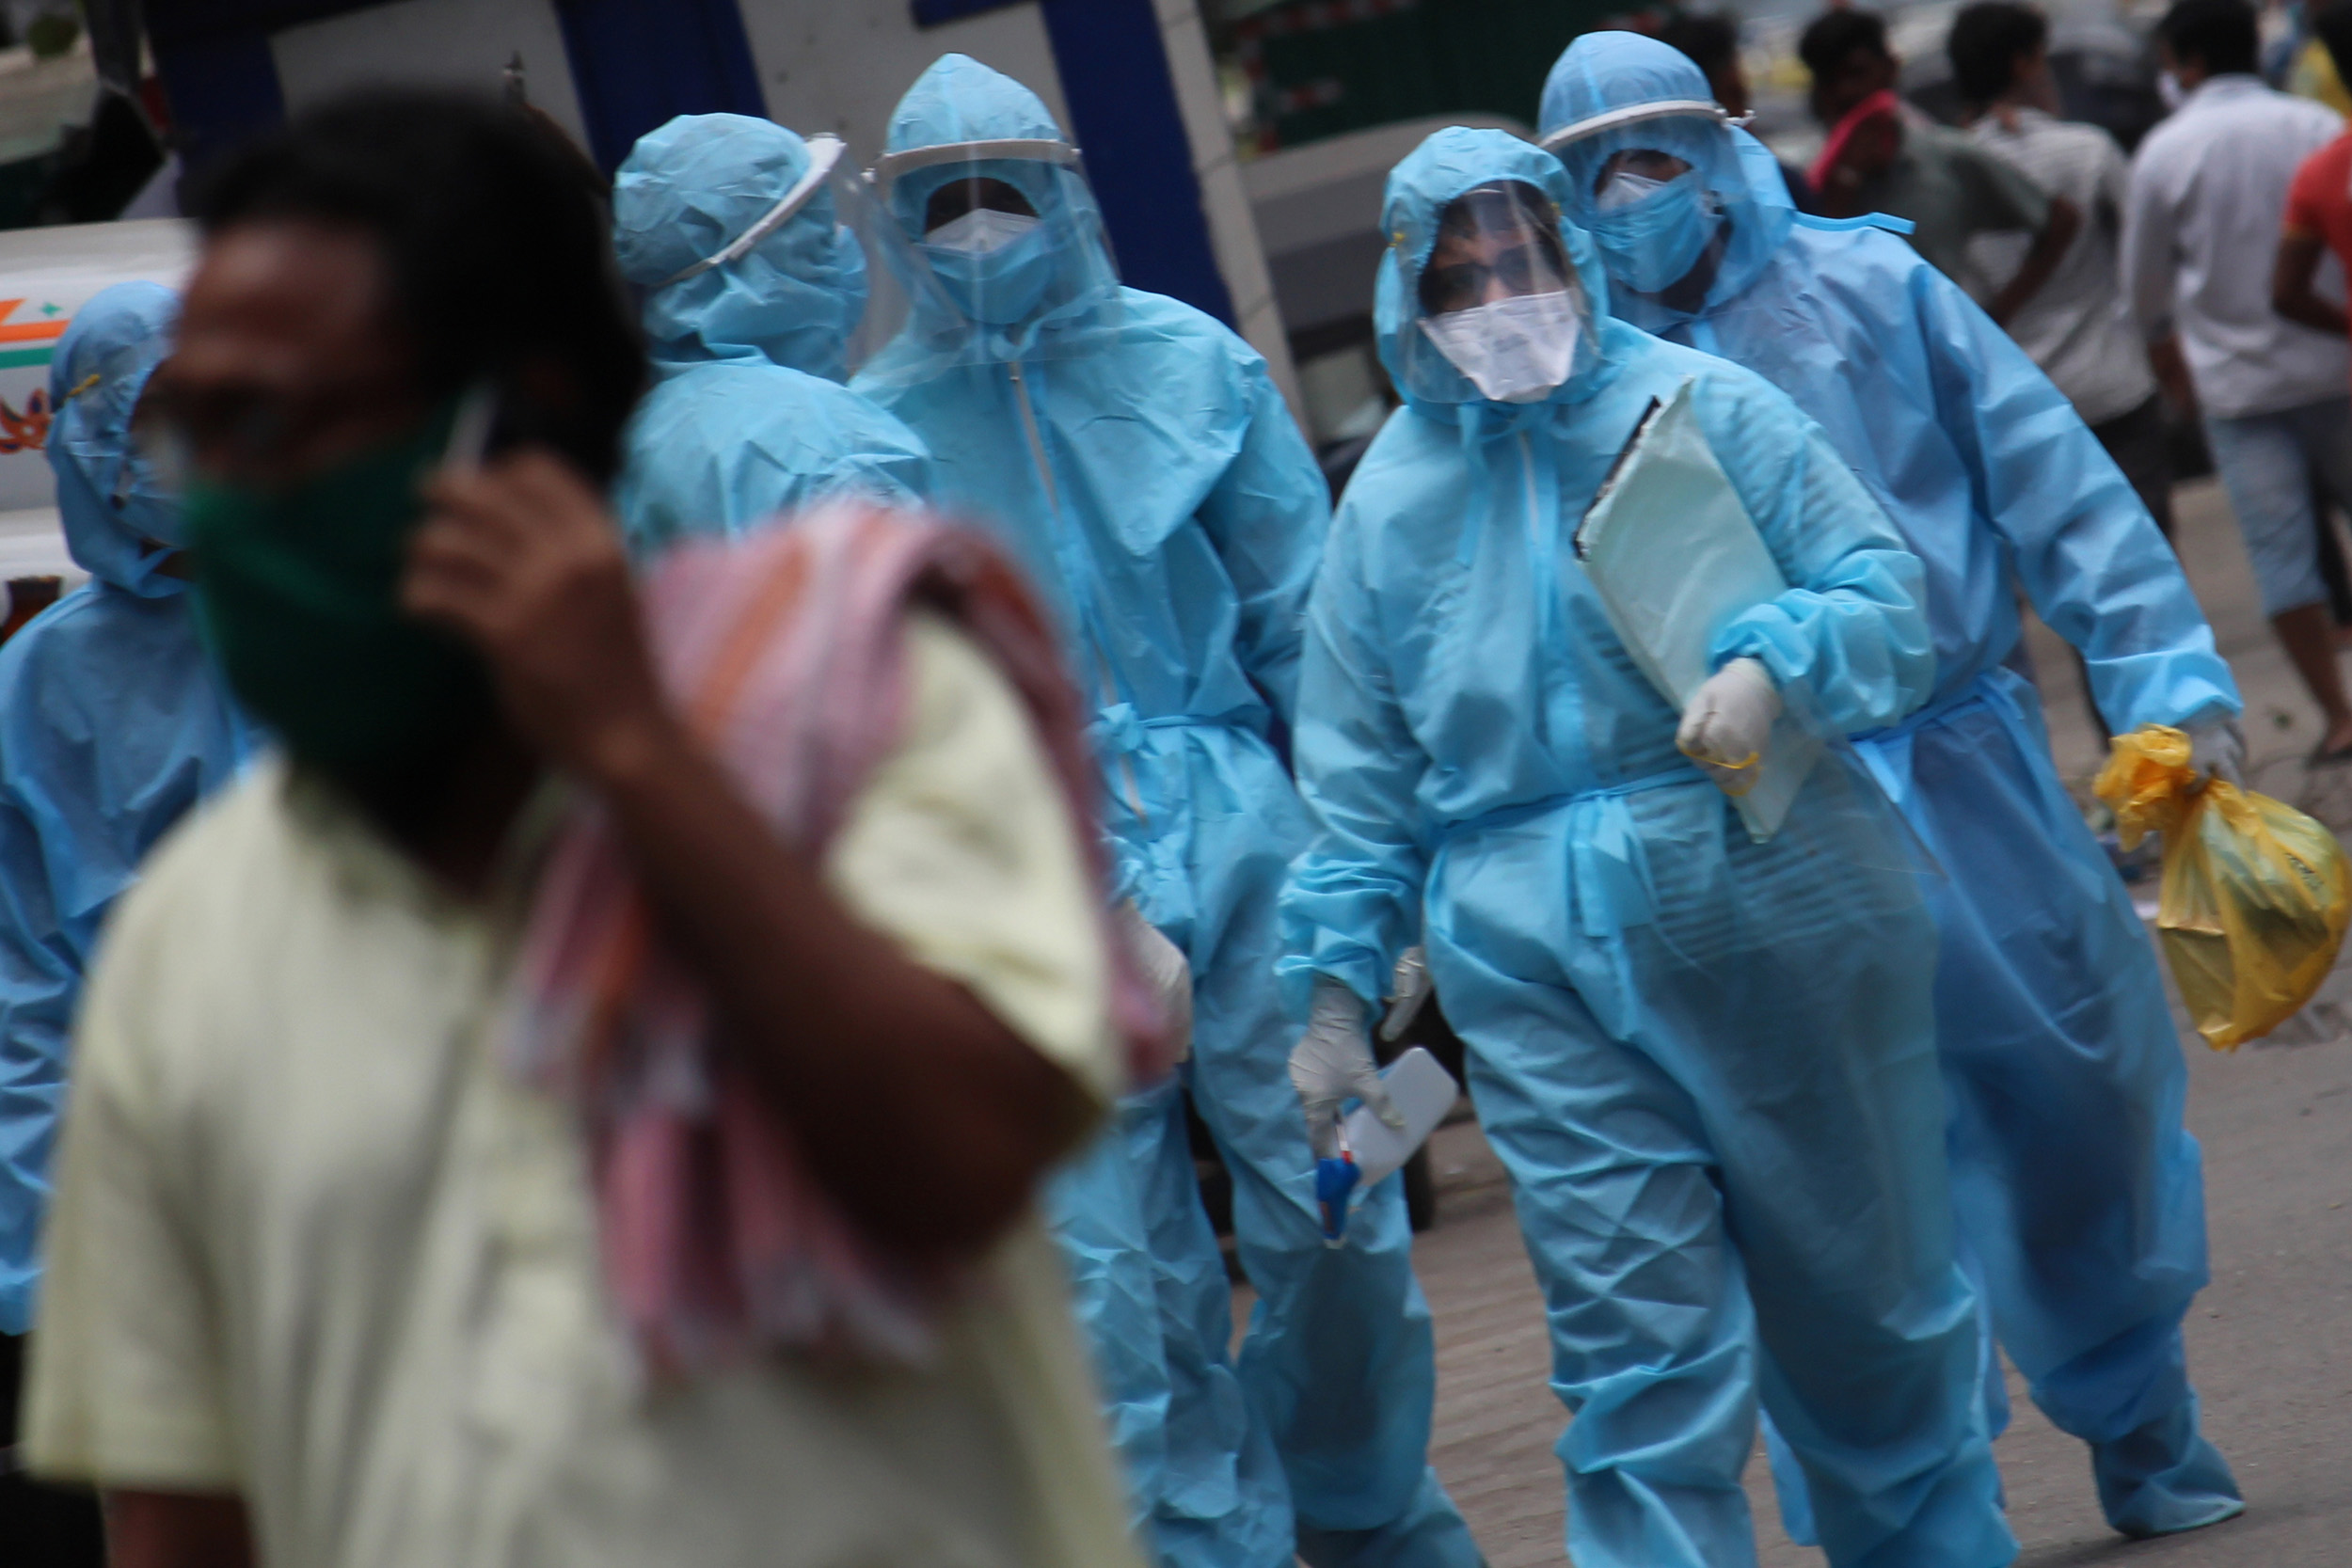 Healthcare workers wearing protective suits walk along a street in the Dharavi slum area of Mumbai, India on Sunday, June 7.